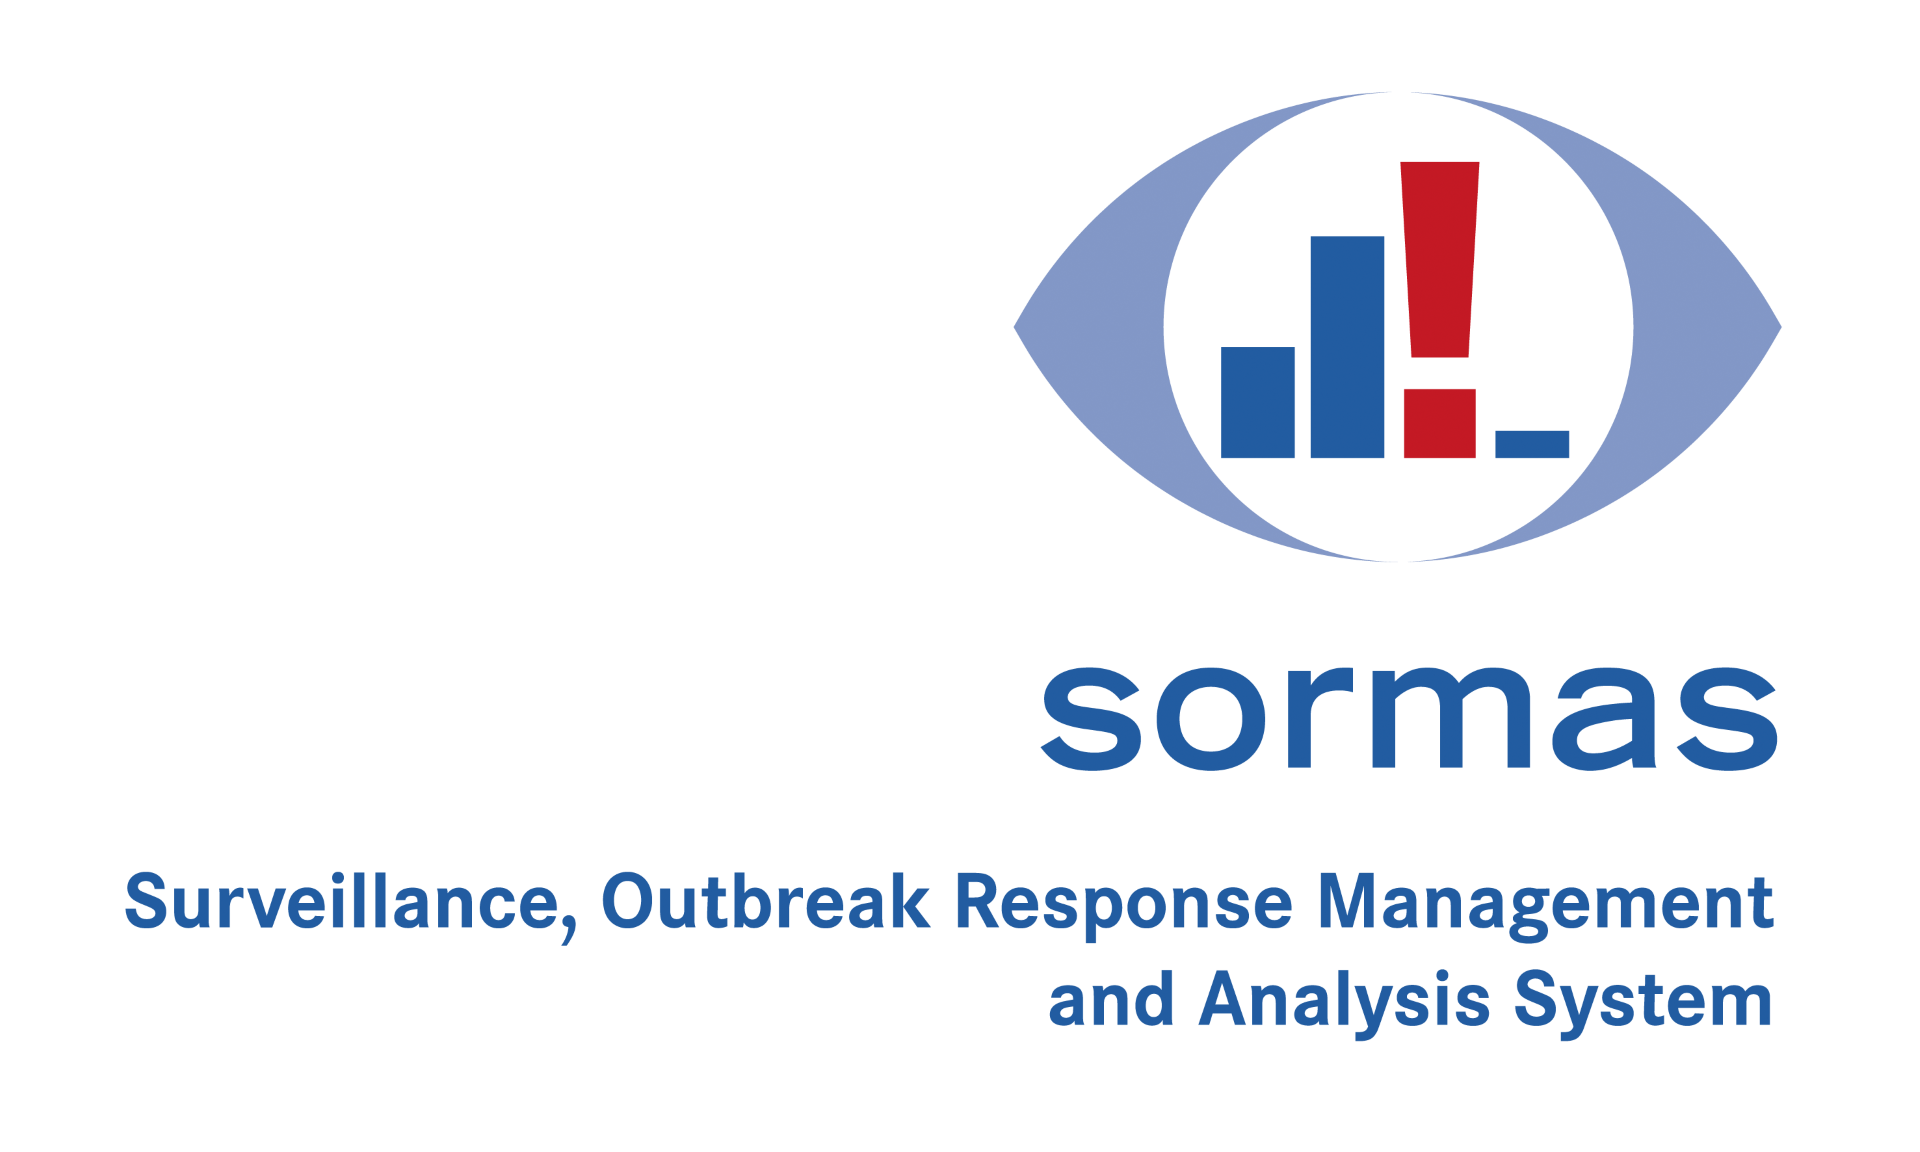 SORMAS - Surveillance, Outbreak Response Management and Analysis System